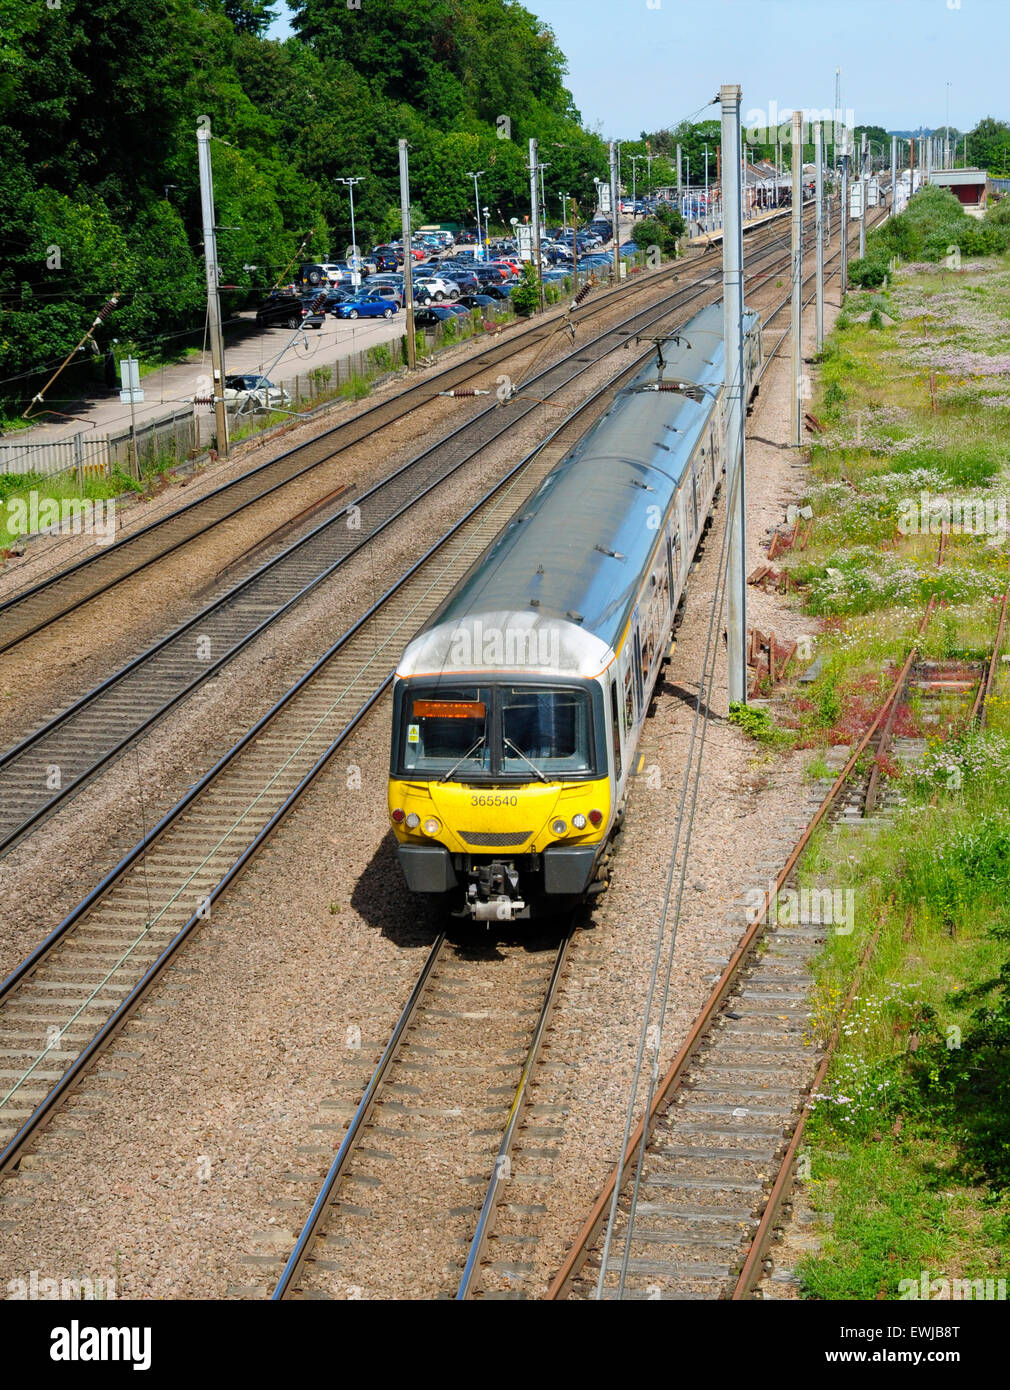 EMU 365540 leaves Hitchin, Hertfordshire with a southbound train to London King's Cross - Stock Image